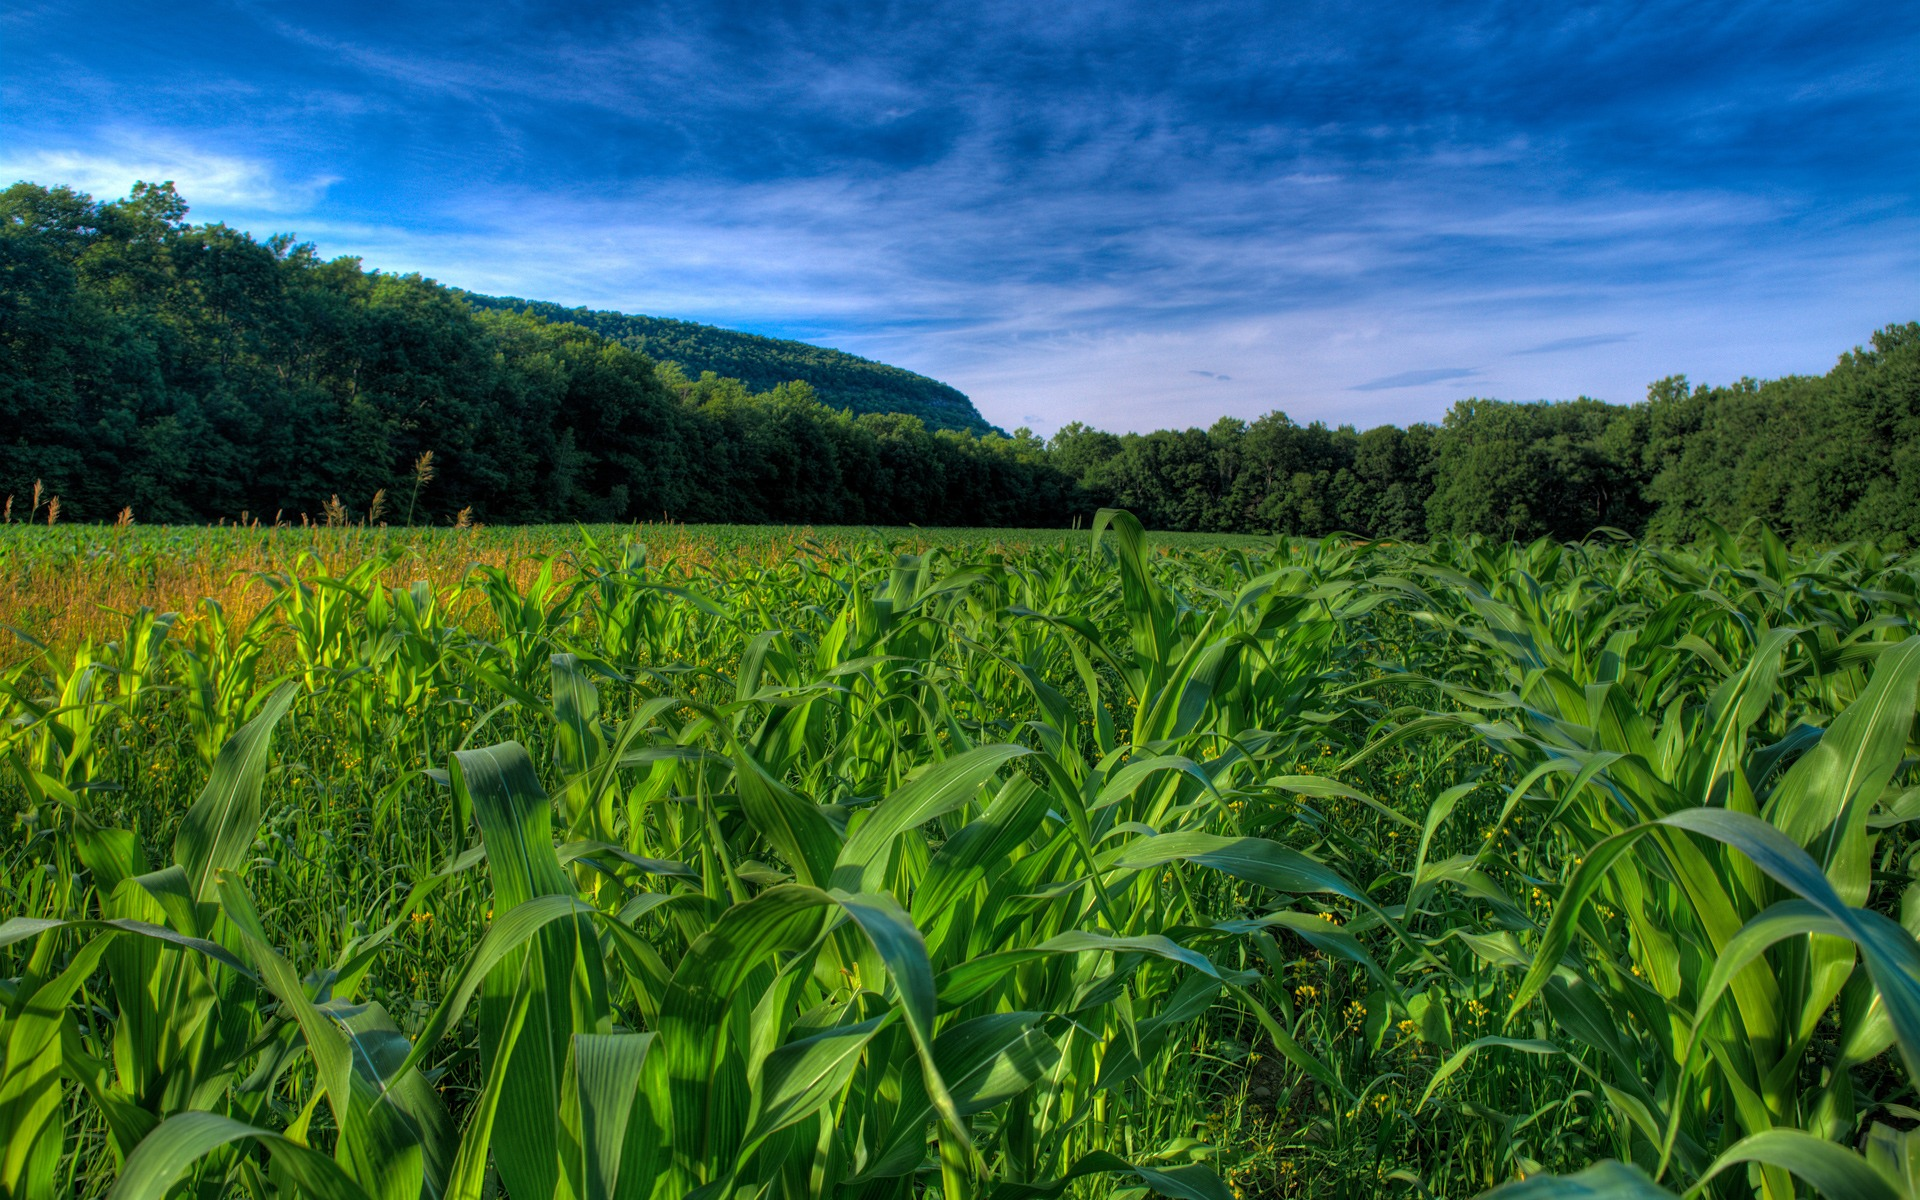 Fields Wallpapers, Images, Photos, Pictures &amp- Pics #fields ...